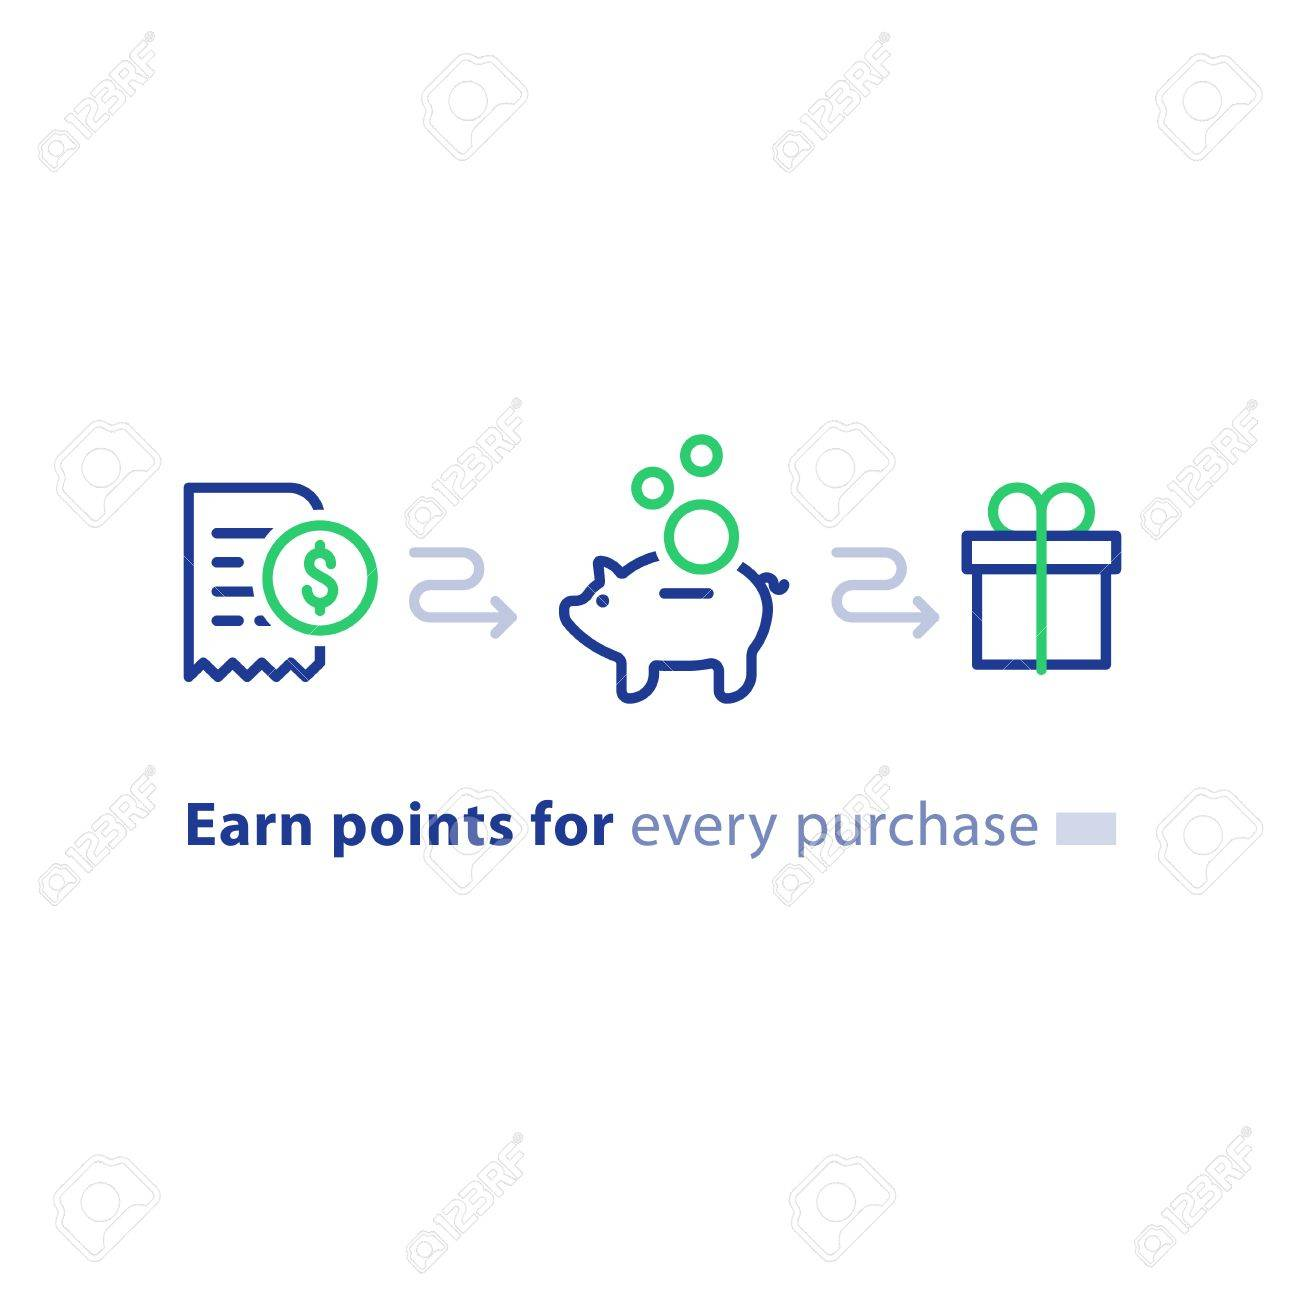 Earn points for purchase concept, loyalty program, cash back, marketing and promotion, reward gift, get bonus, vector line icons - 87332812